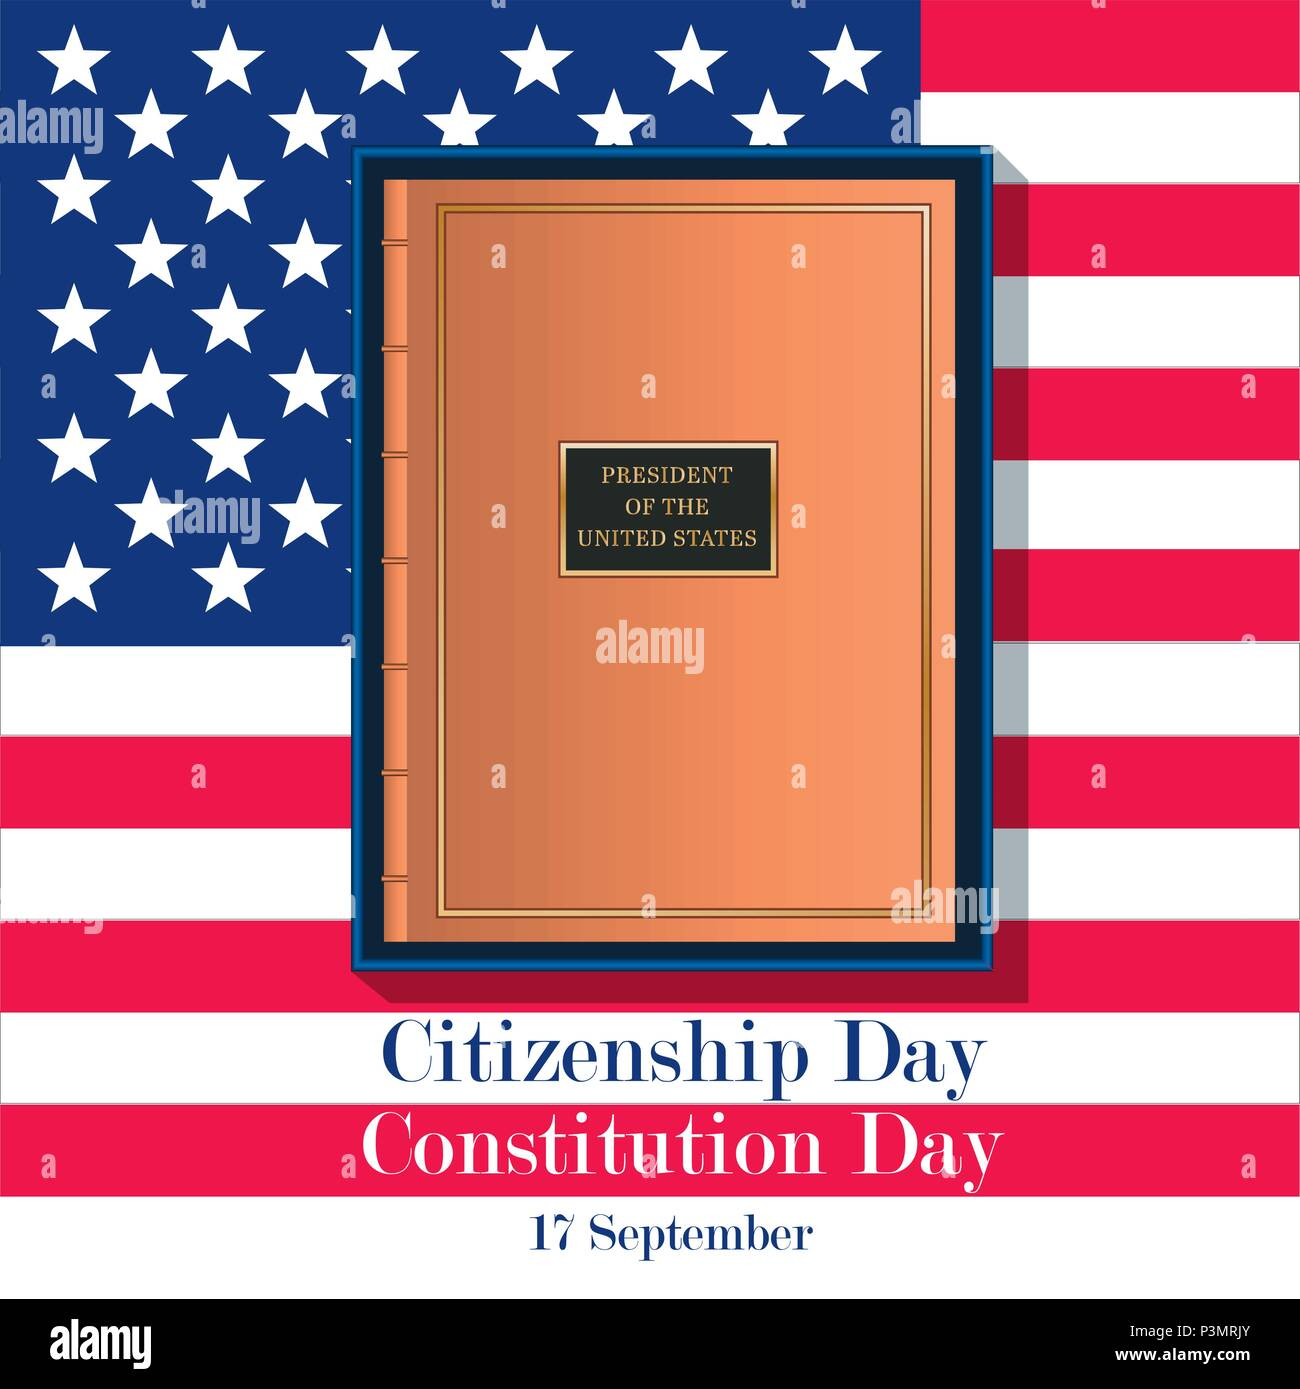 17th September American Citizenship Day Poster Design template - Stock Image